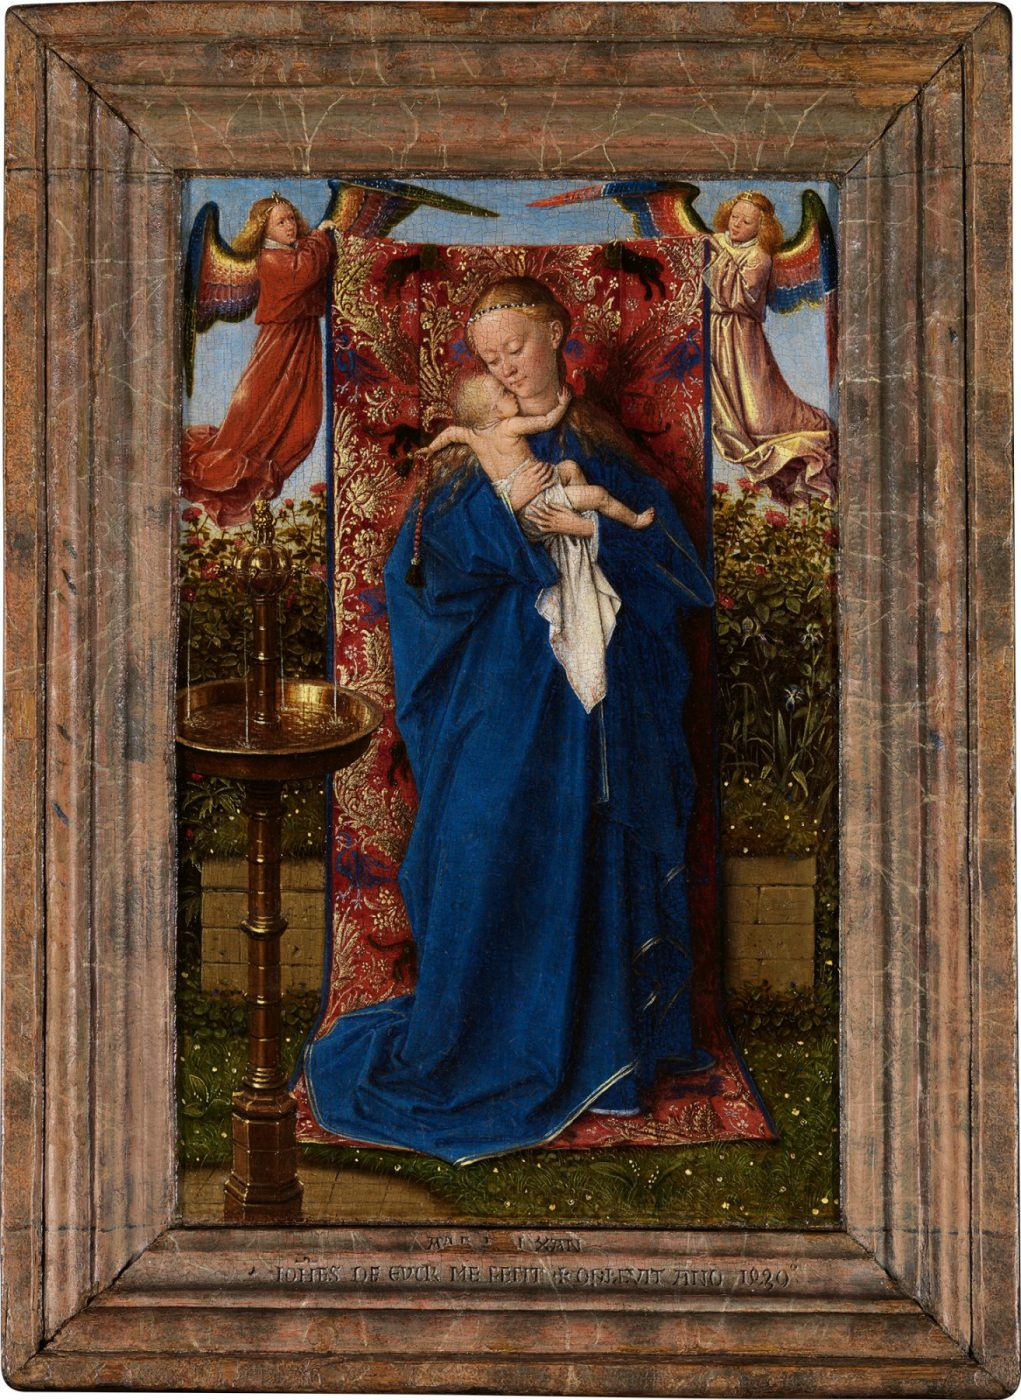 Jan van Eyck, The Madonna at the Fountain, 1439 (Royal Museum of Fine Arts, Antwerp © www.lukasweb.be - Art in Flanders vzw. Photo Hugo Maertens)